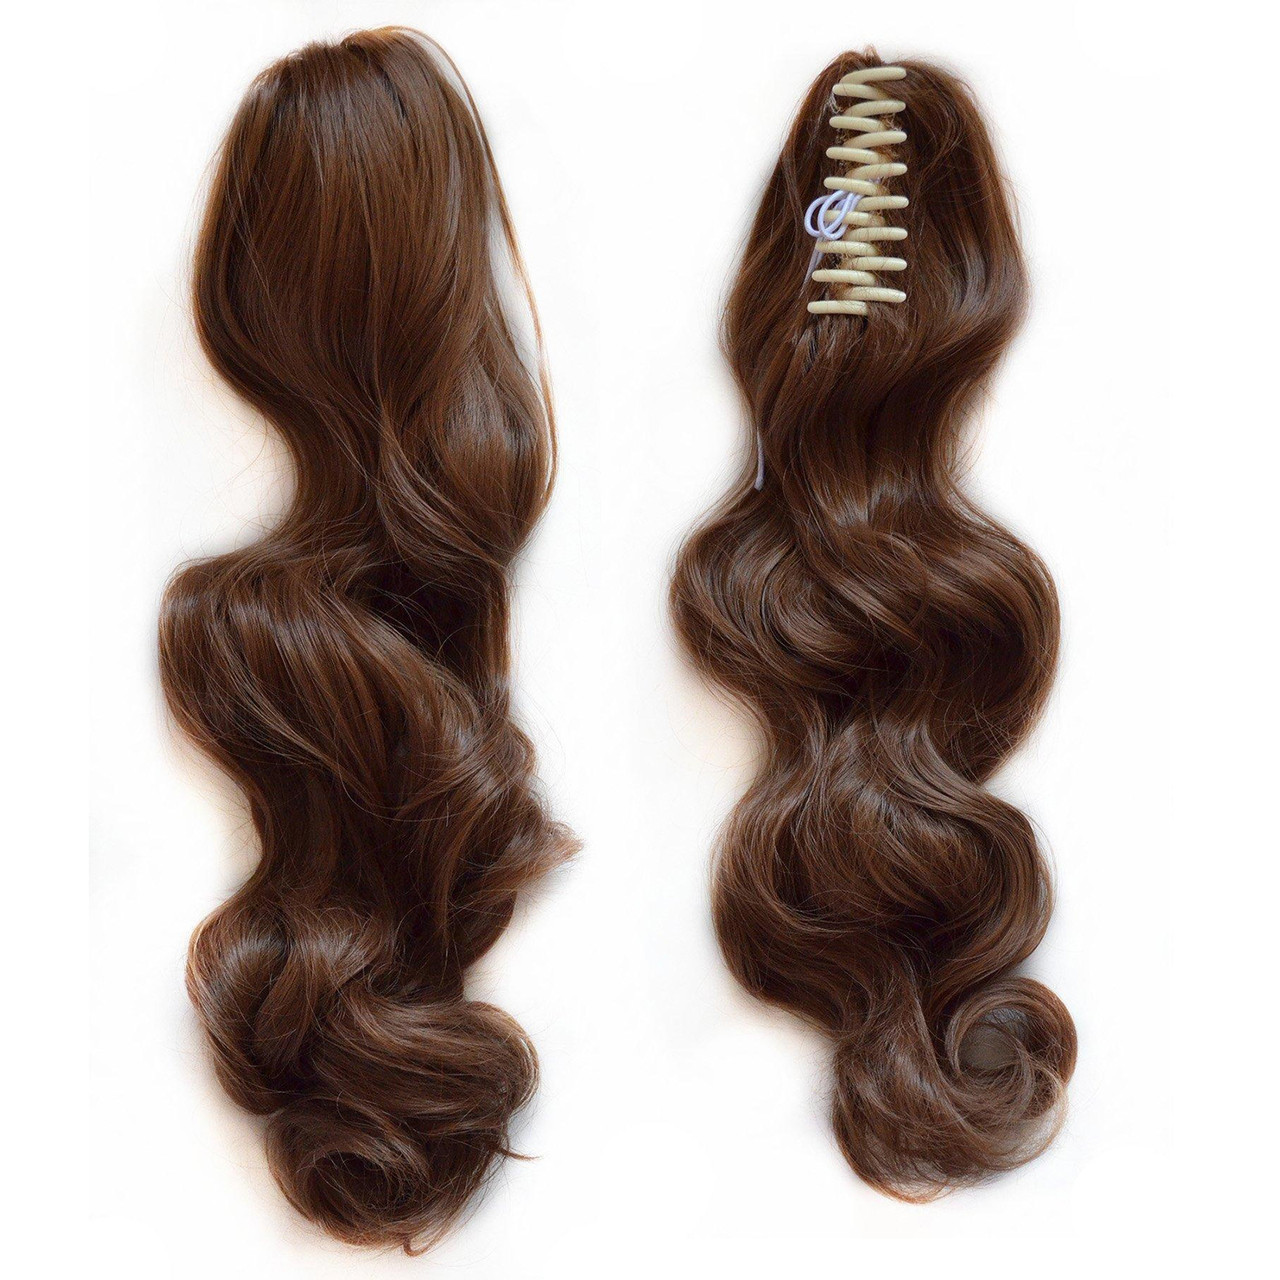 Wavy Real Human Hair Ponytails Hairpiece Claw Clip